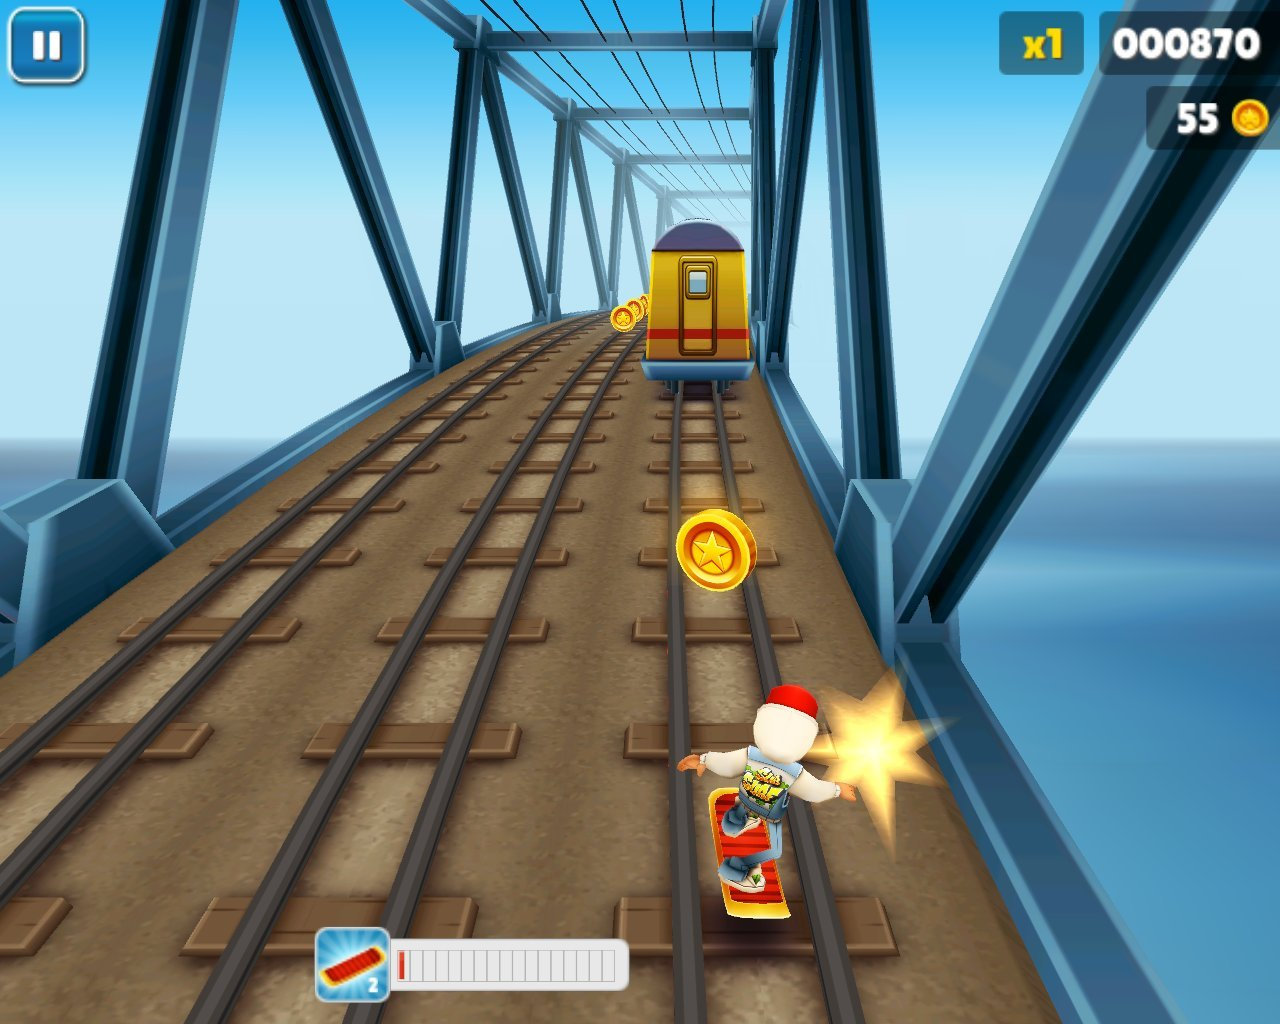 Subway Surfer Free Download Pc Game Full Version